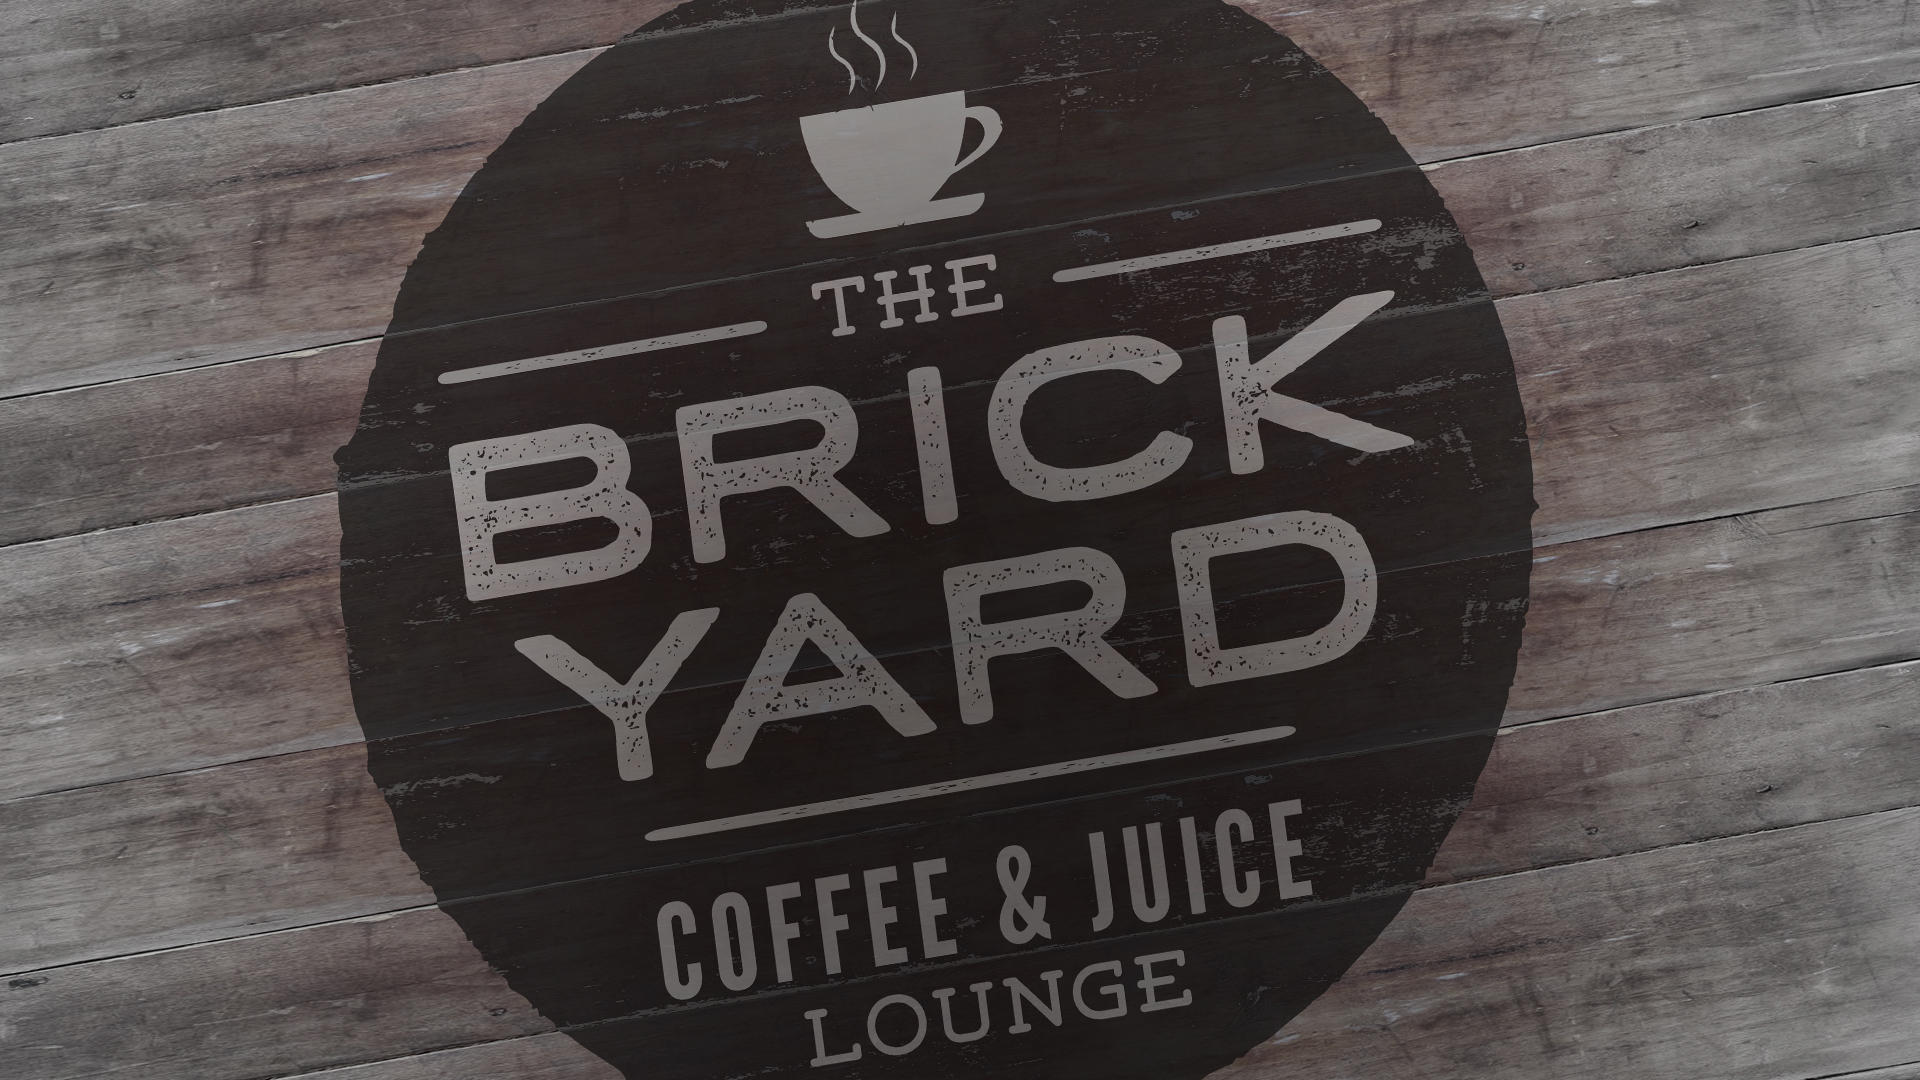 The Brick Yard